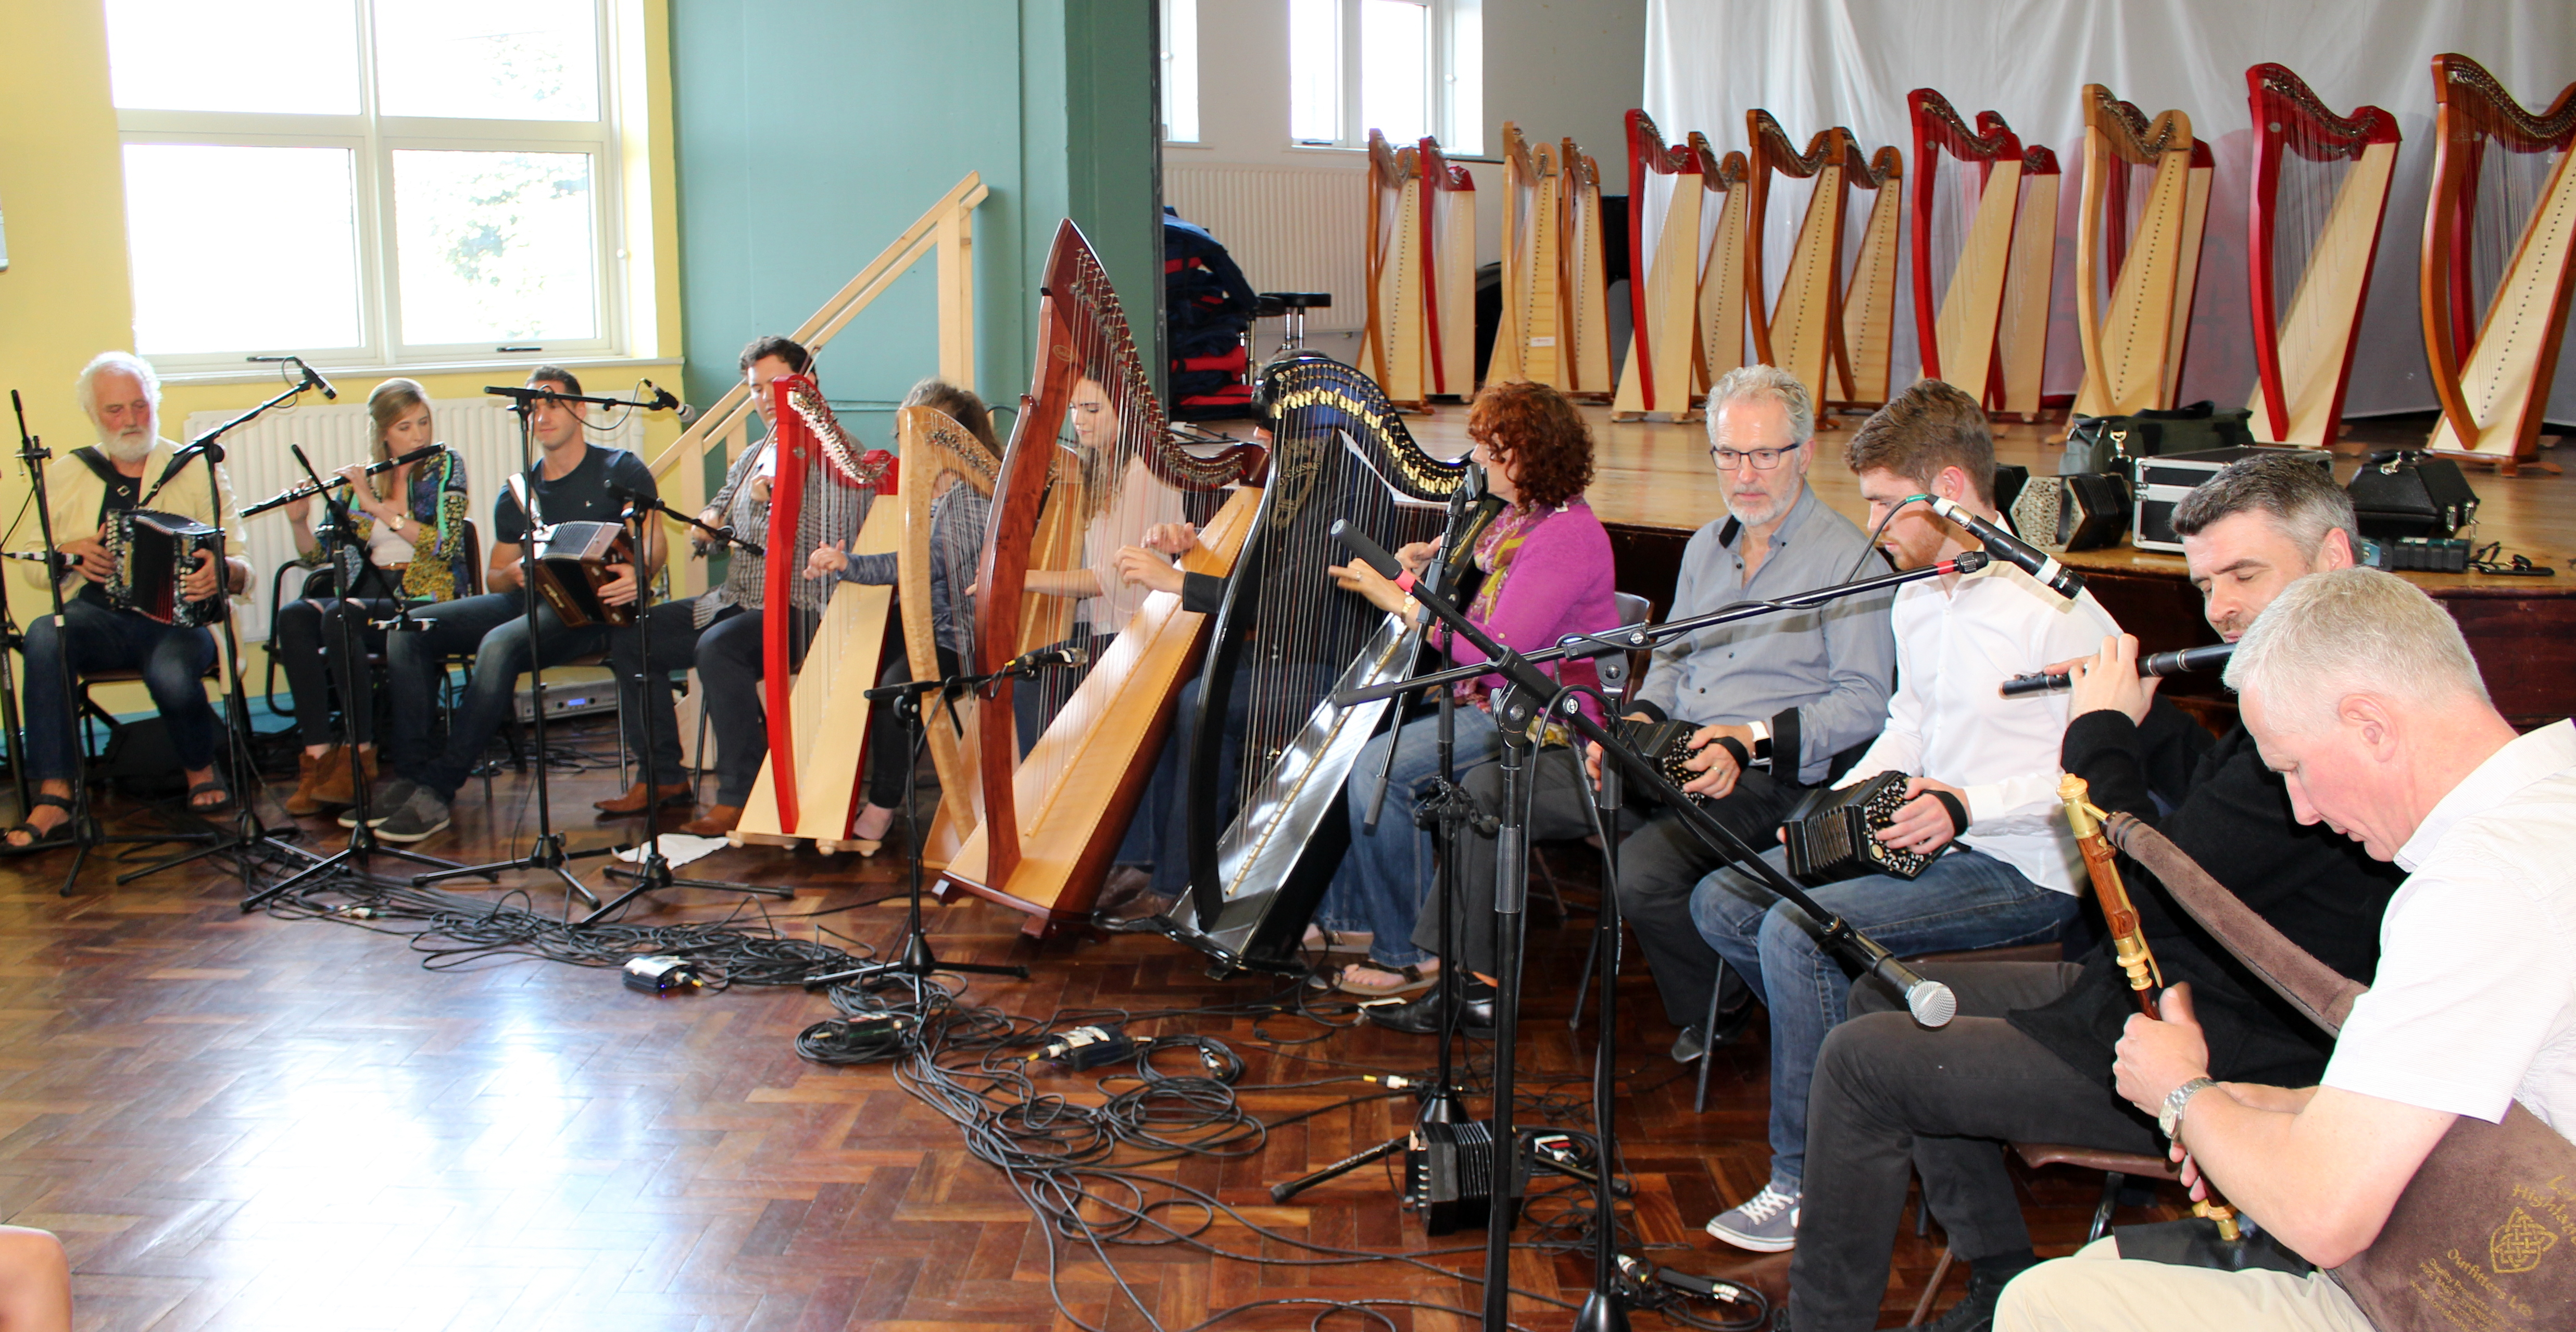 Tutor Concert at Portlaoise Youth Education Centre